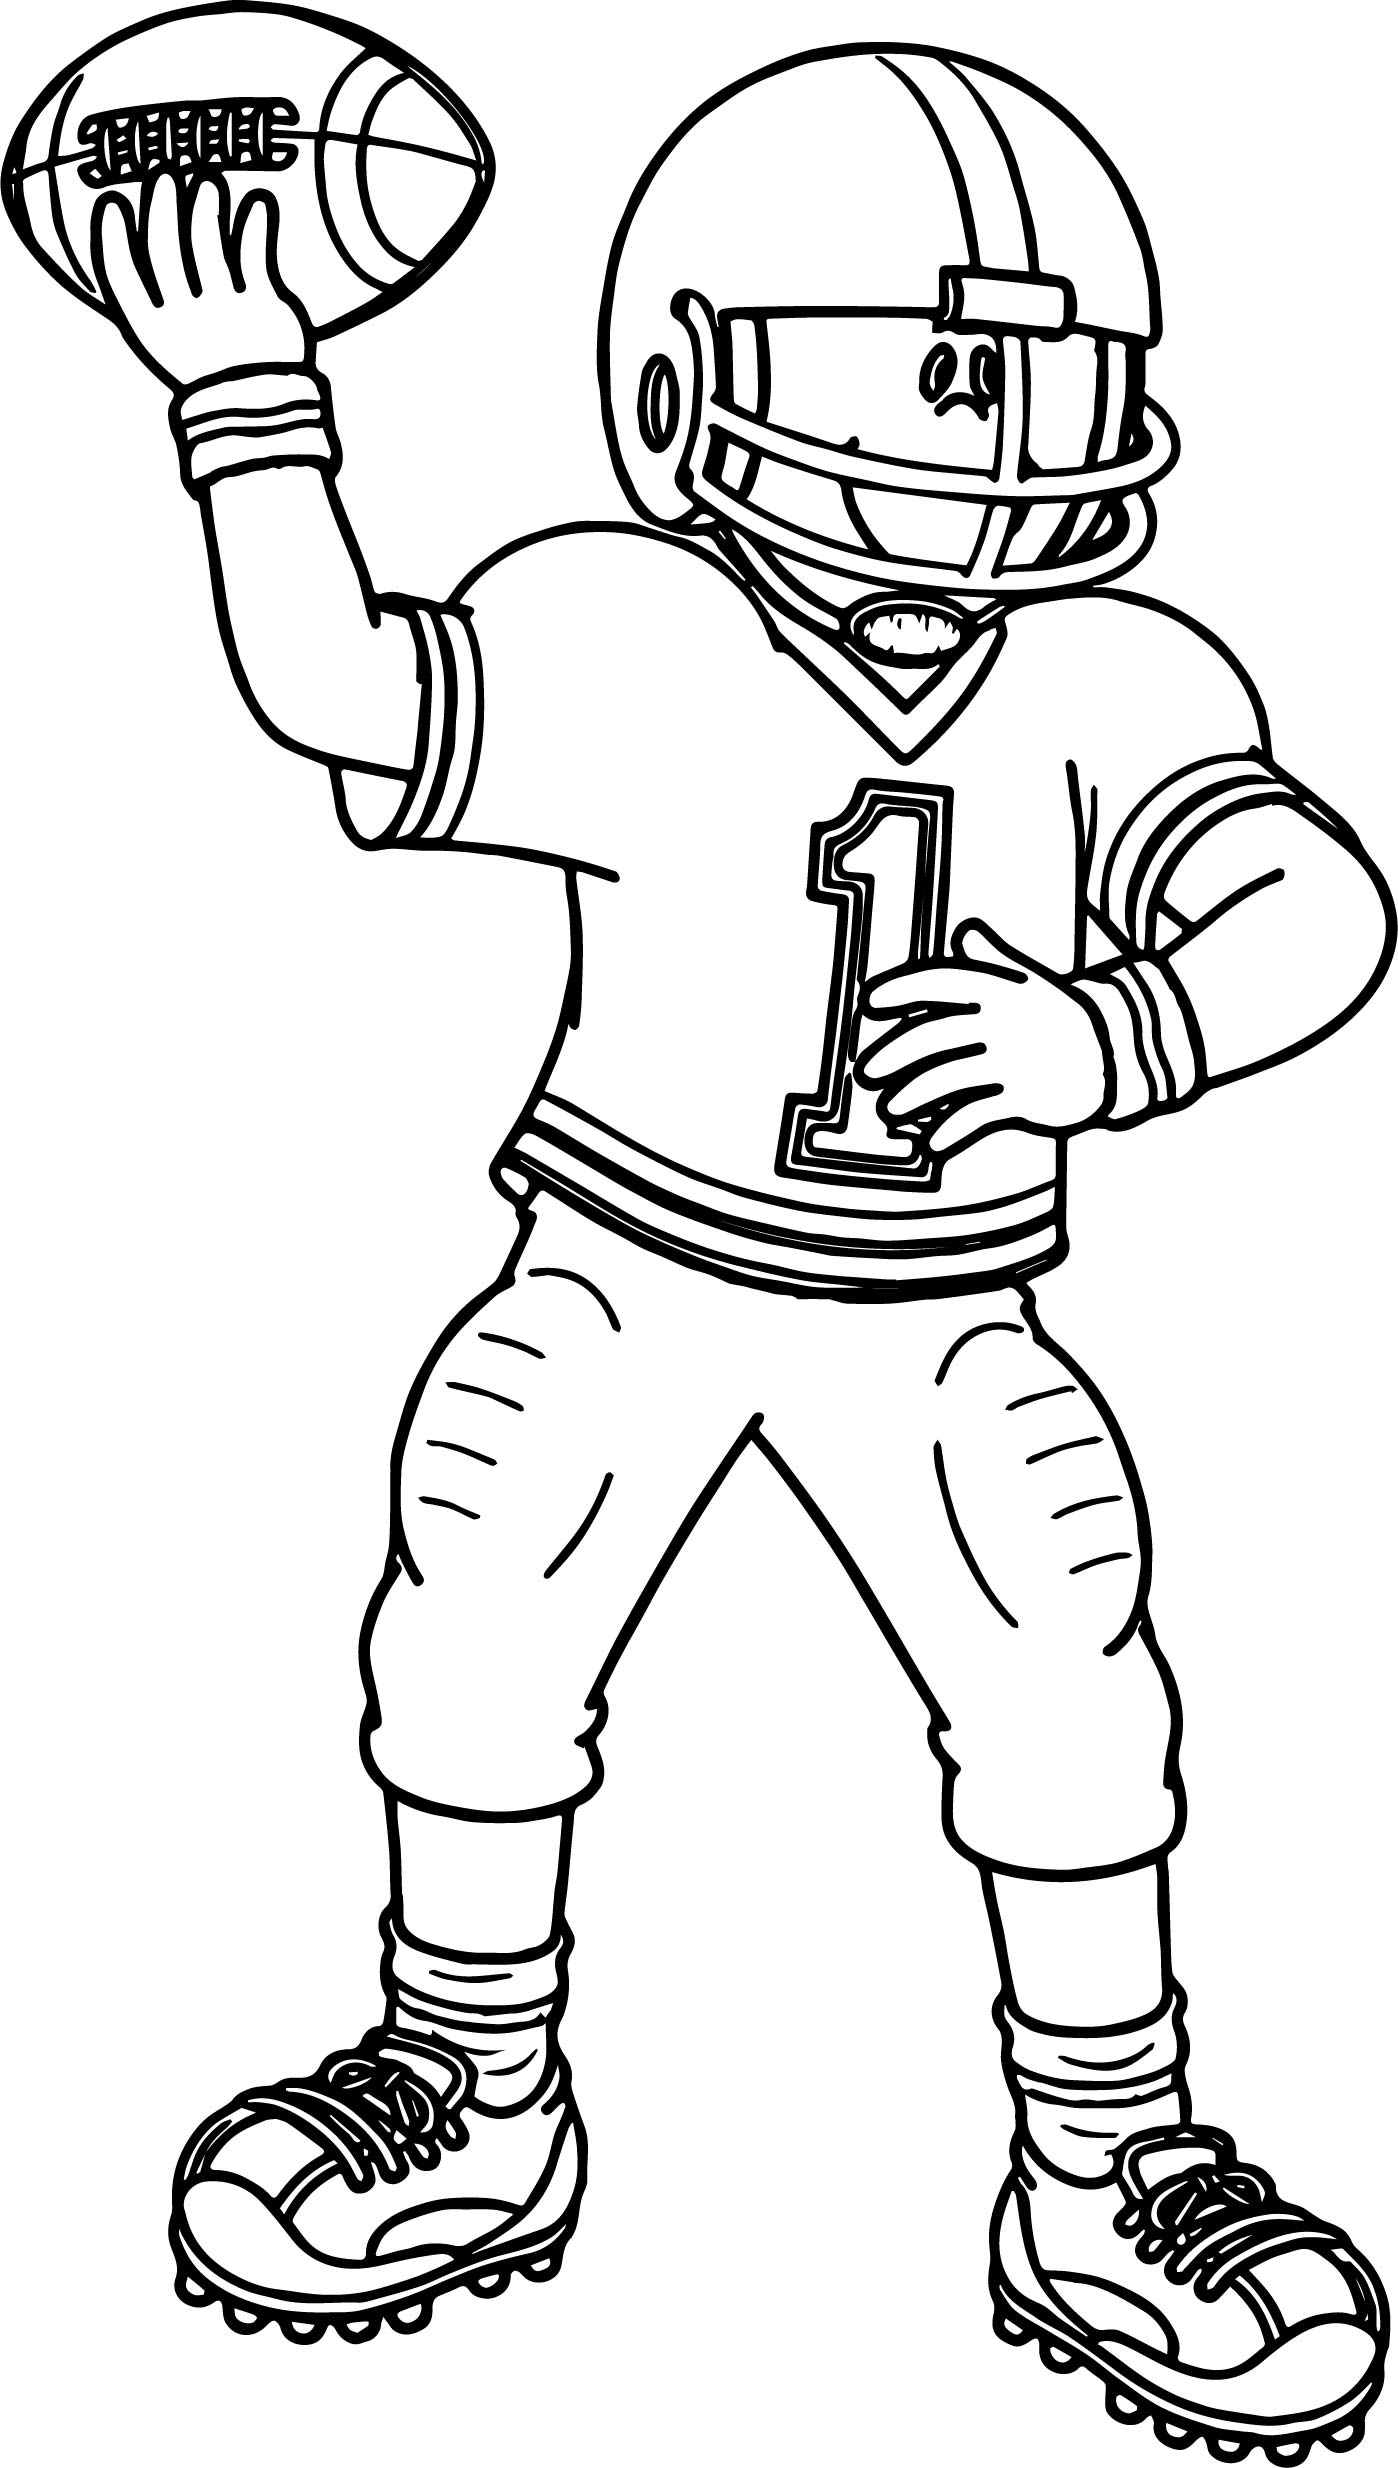 coloring pages of football players football player sport football playing football coloring pages of players coloring football